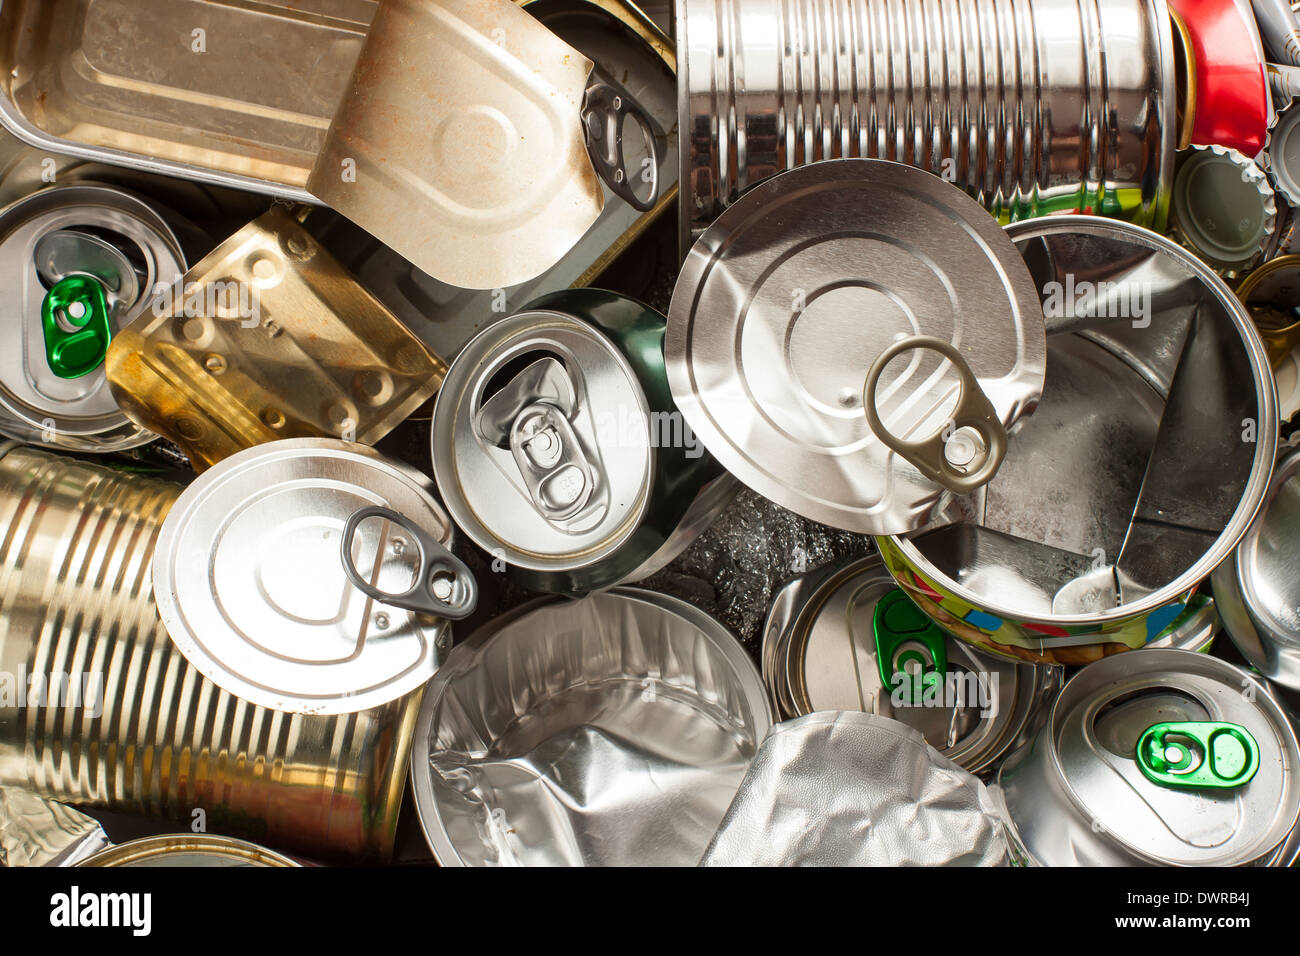 Segregated metal wastes ready to recycling - Stock Image